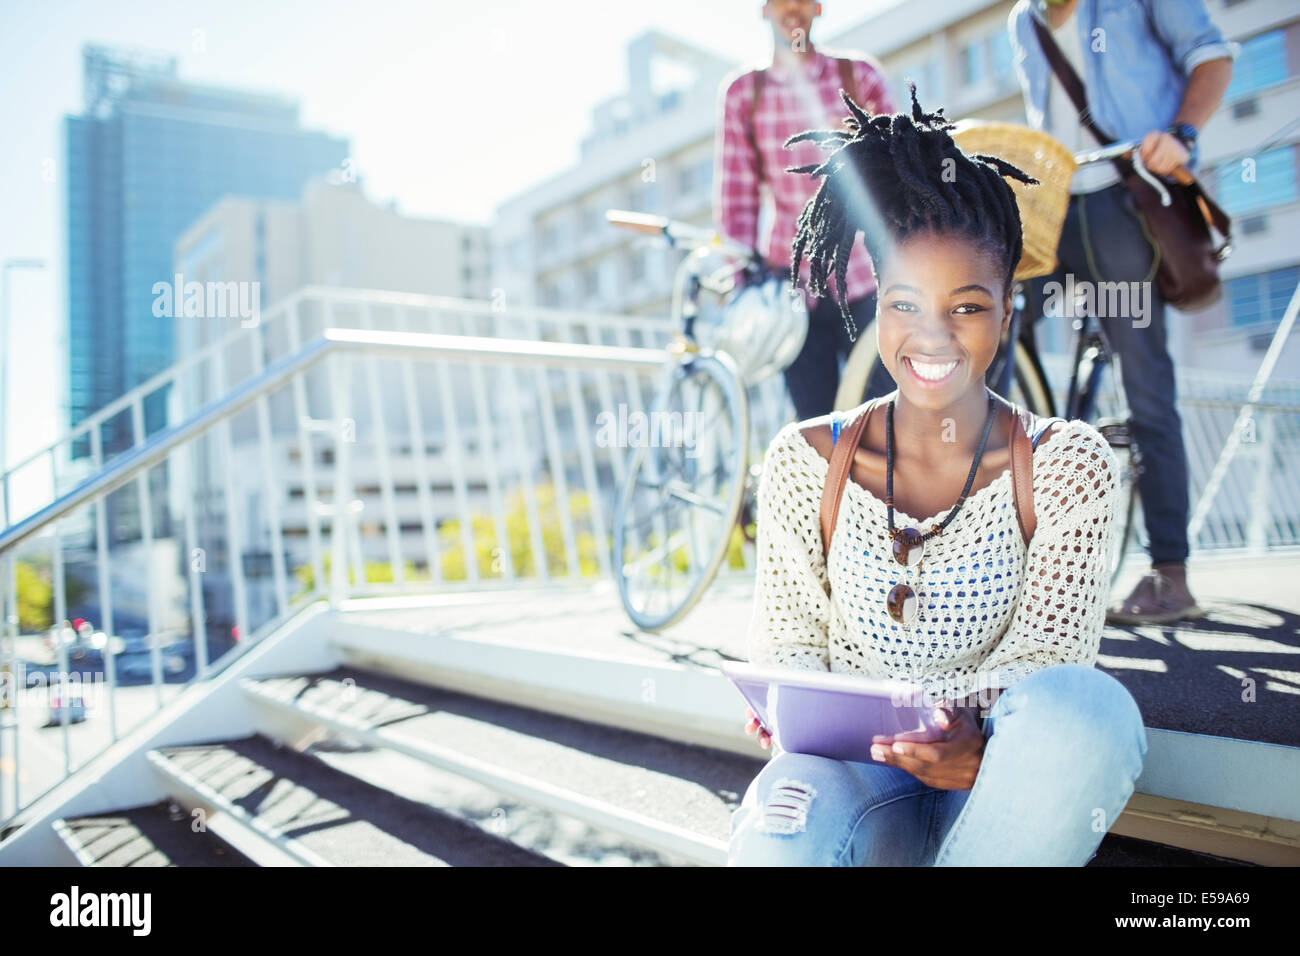 Woman using digital tablet on city street - Stock Image